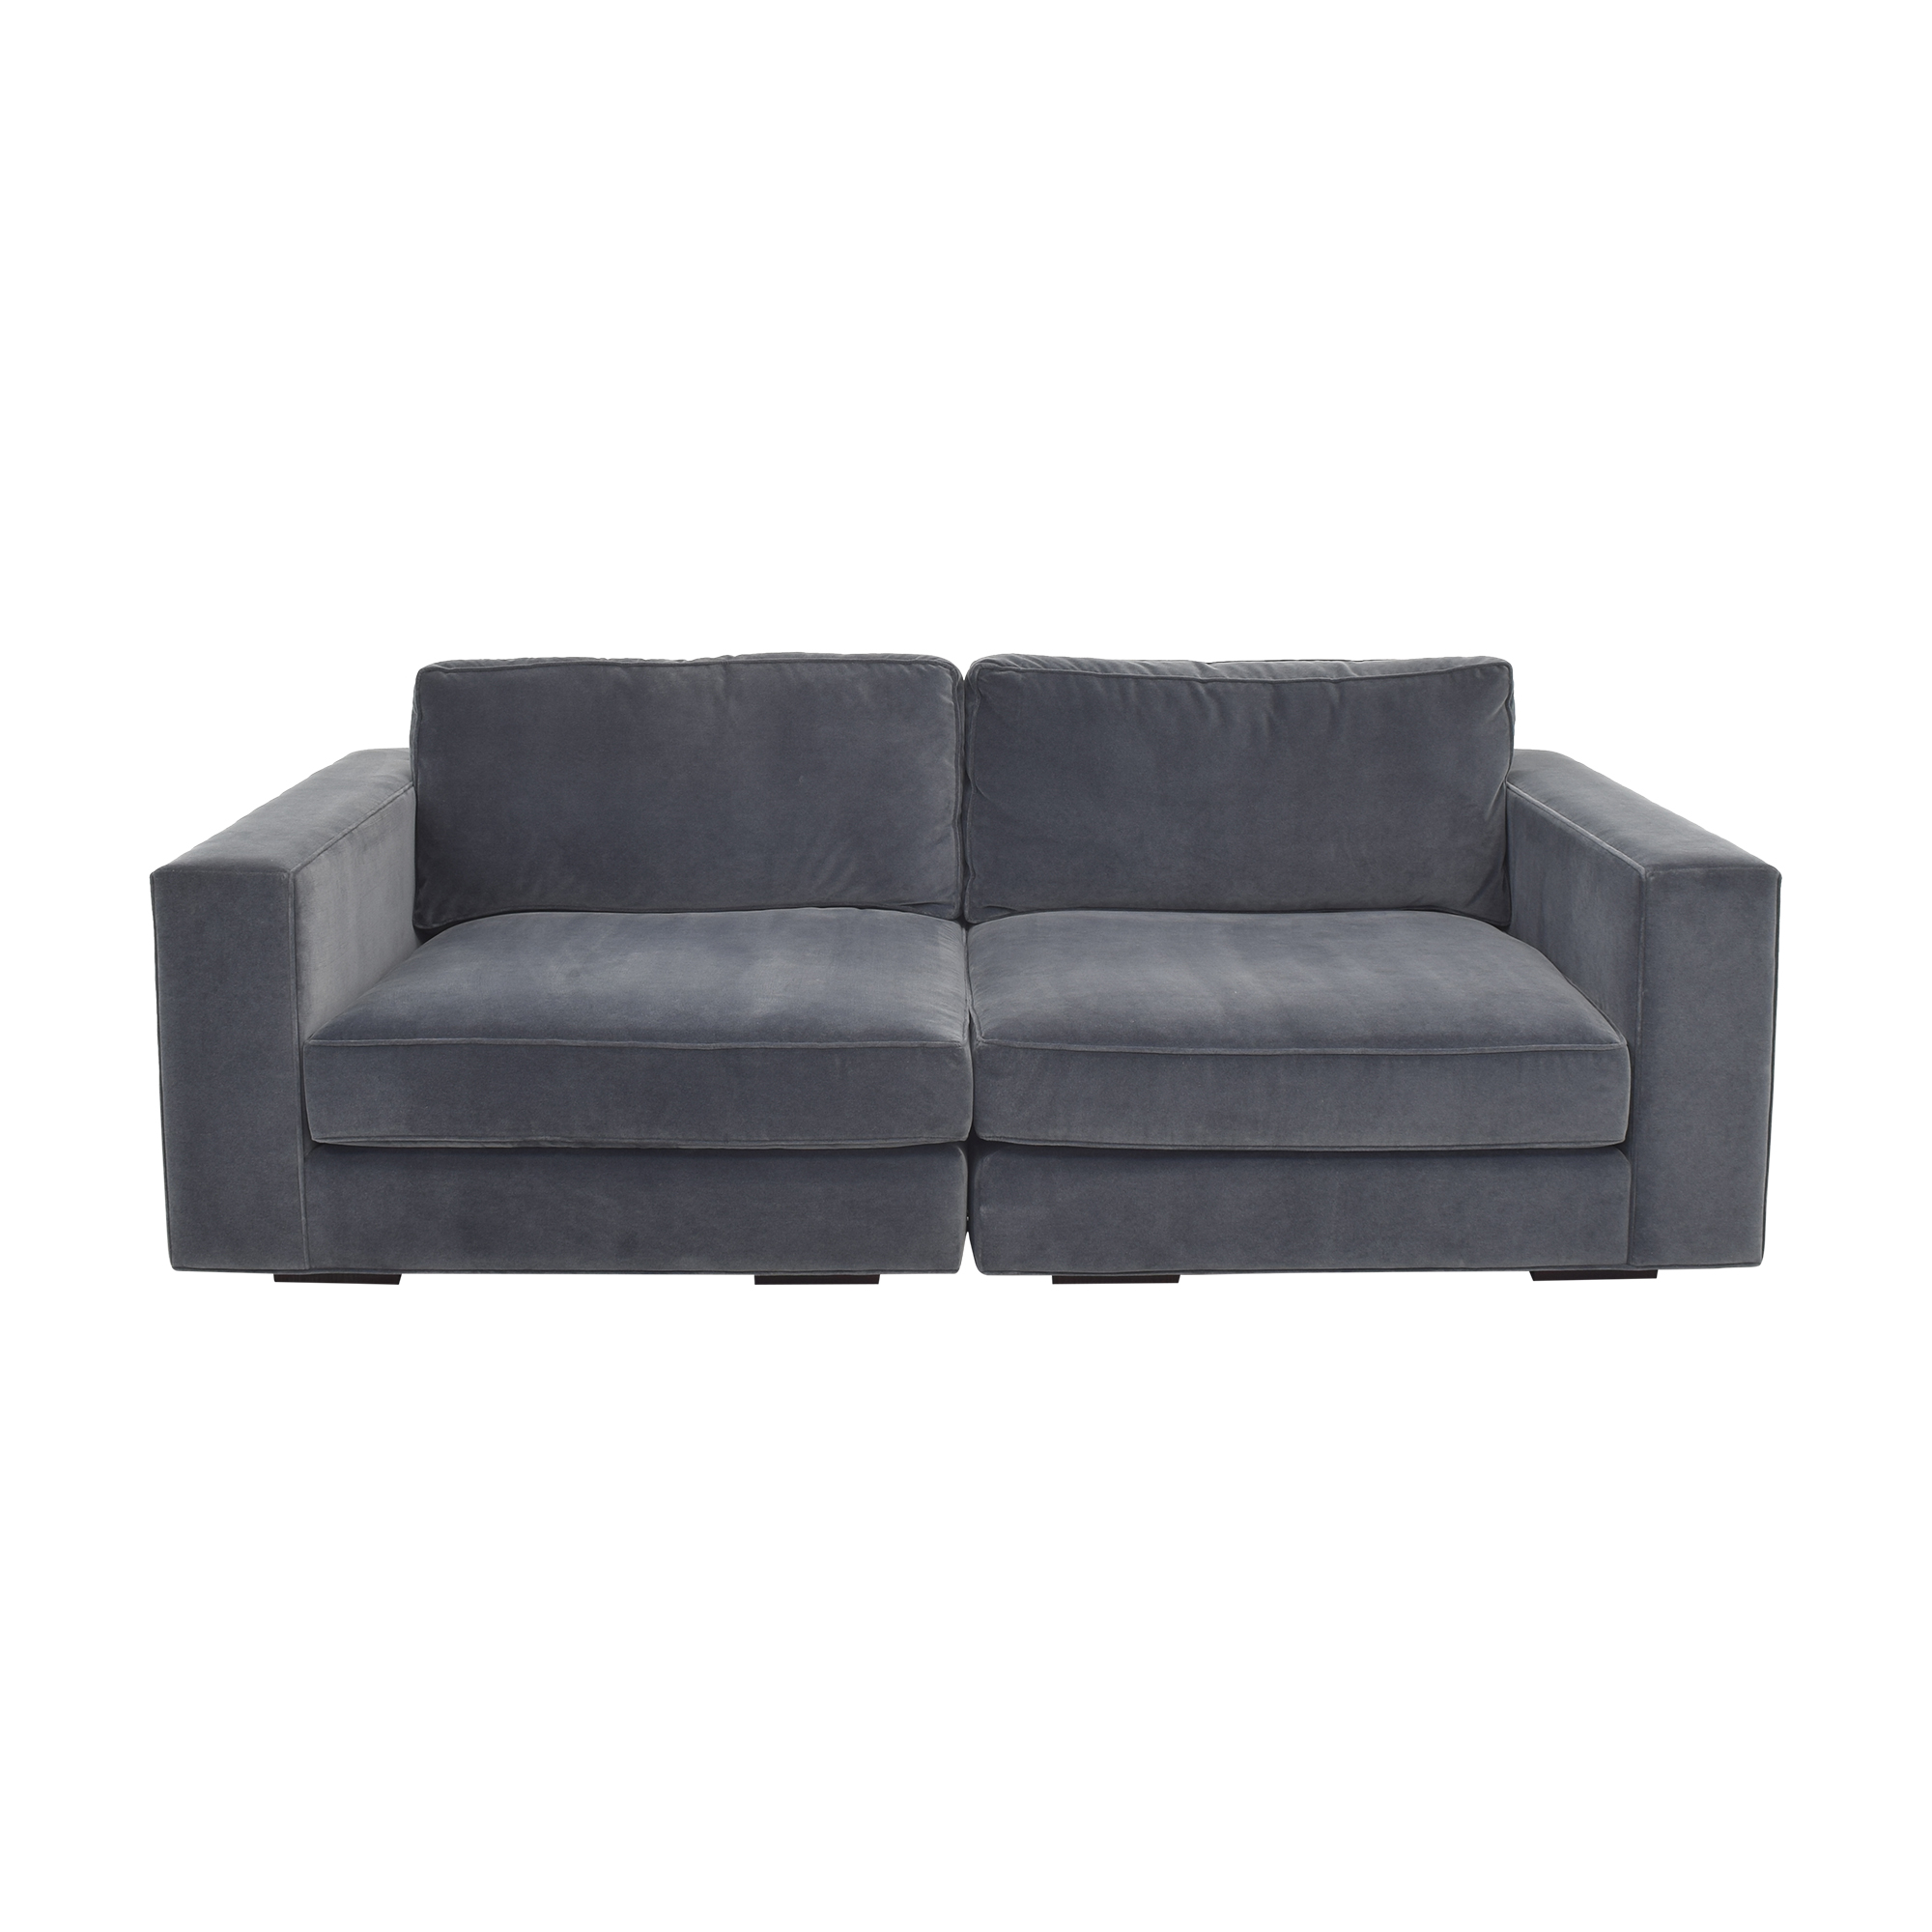 Restoration Hardware Maddox Sectional Sofa with Ottoman sale